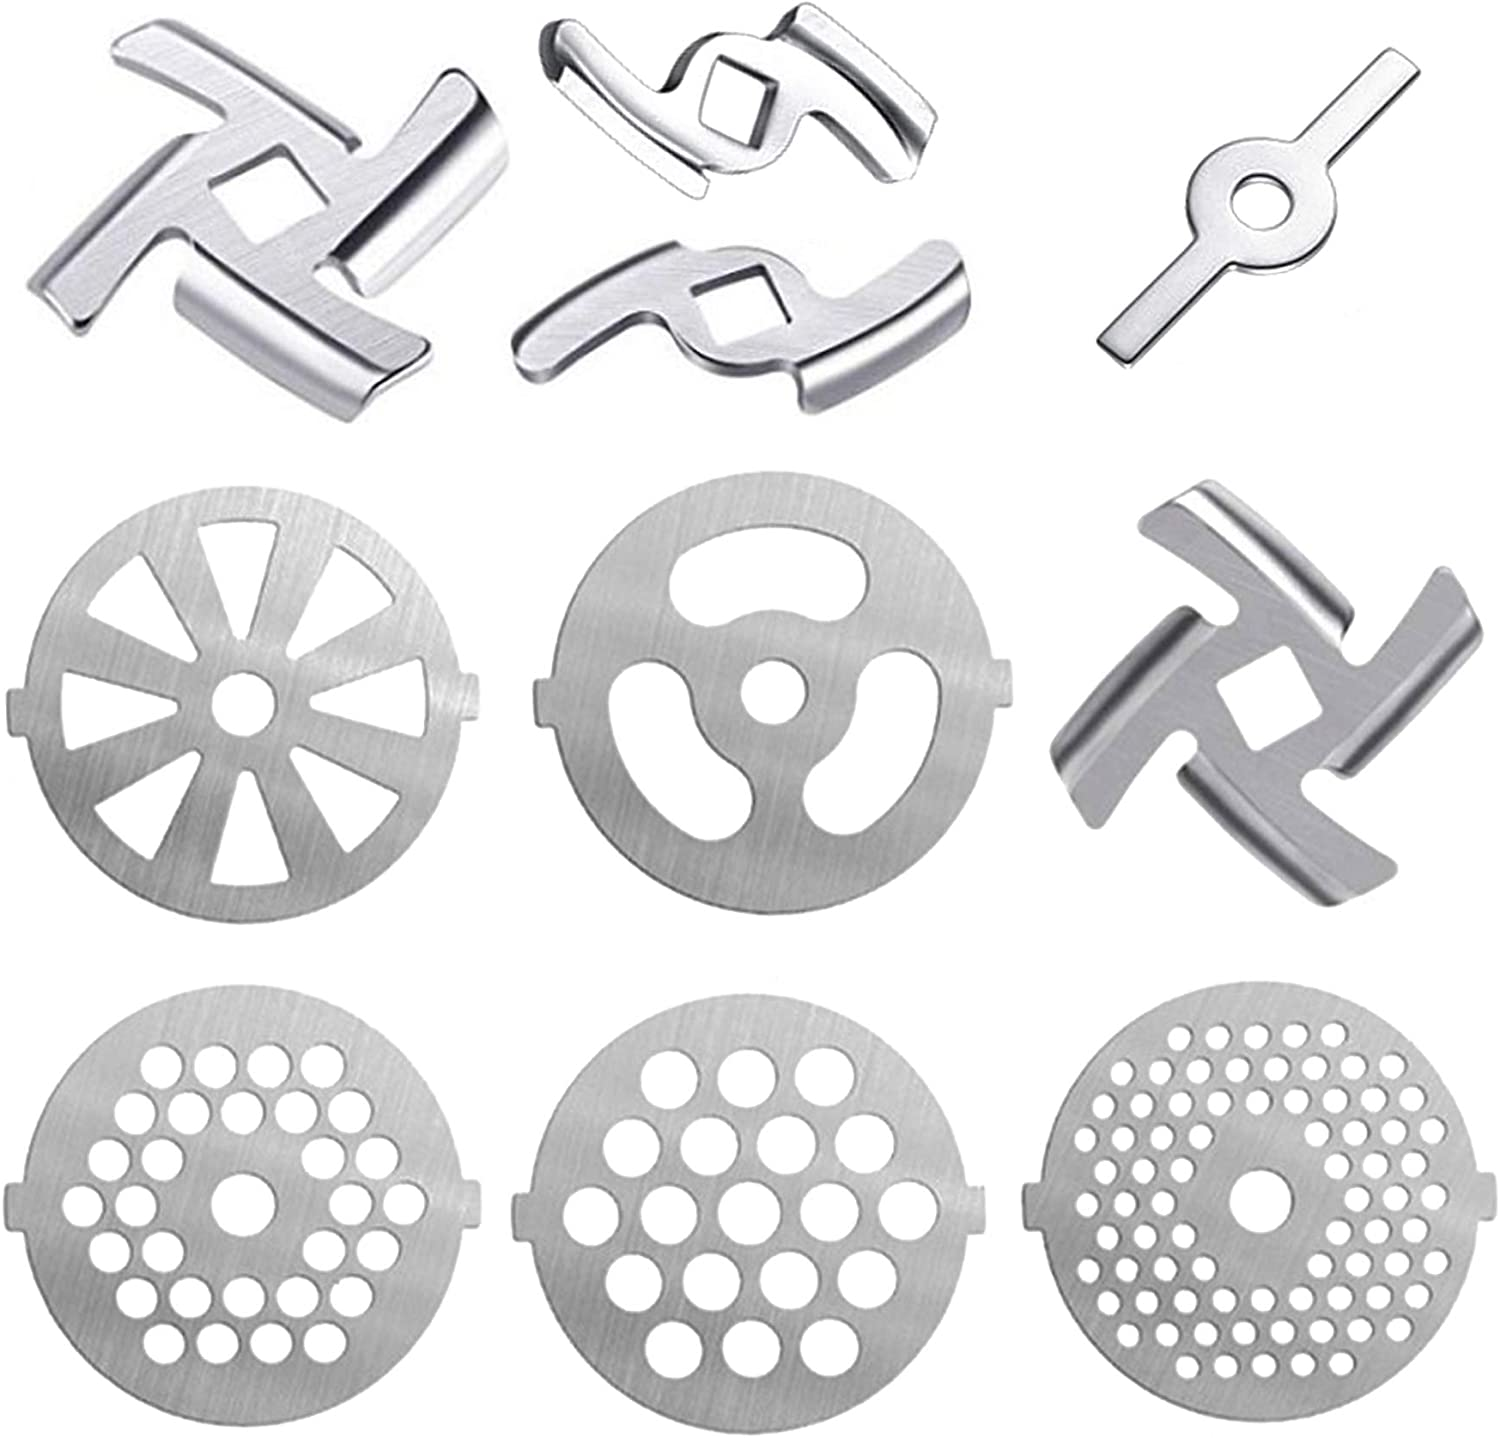 Gogmooi 10 Pcs Meat Grinder Parts Blades, Stainless Steel Food Grinder Accessories, Meat Grinder Attachment for Size 5 Stand Mixer and Meat Grinder Accessories